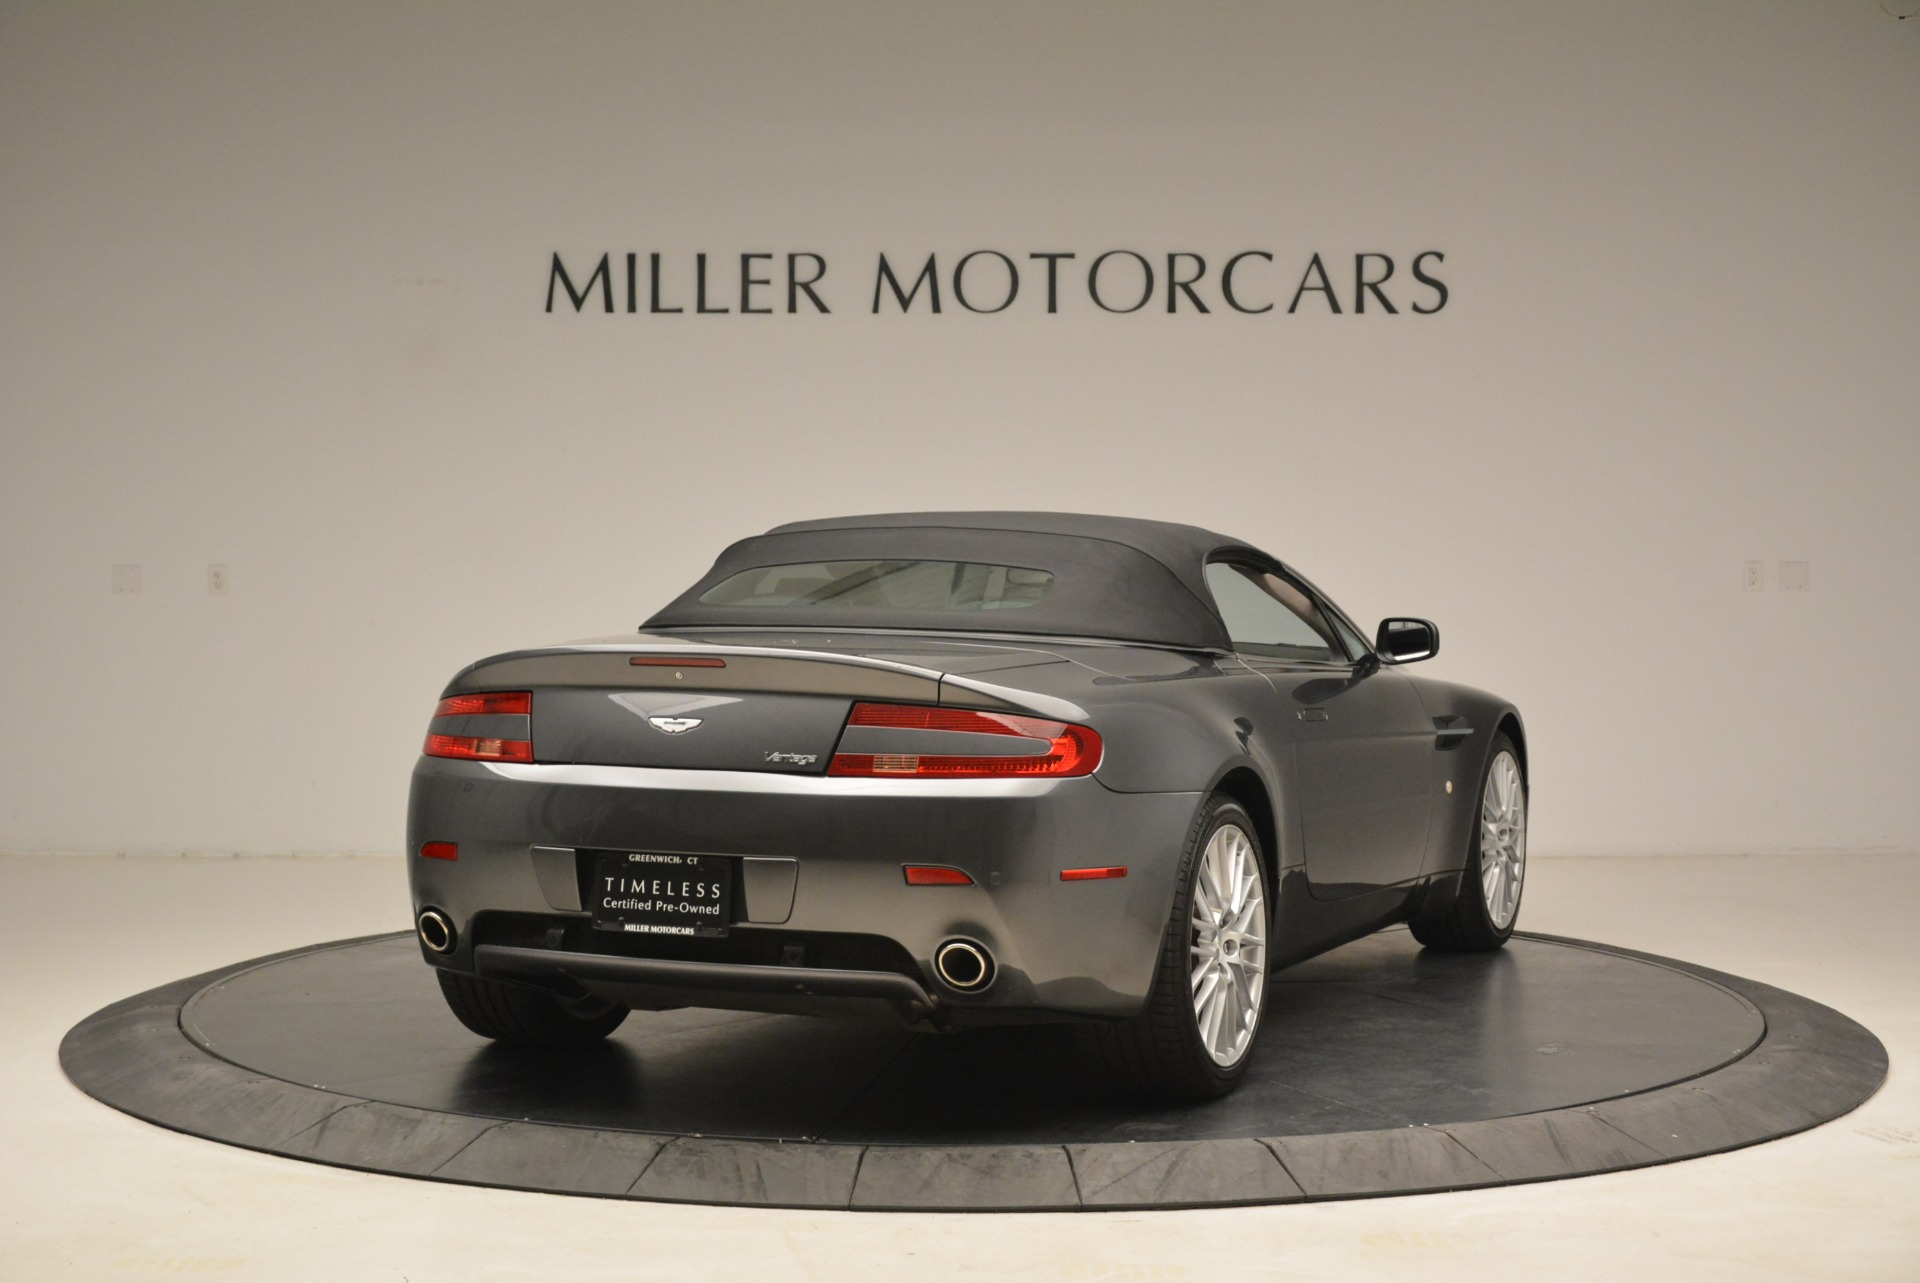 Used 2009 Aston Martin V8 Vantage Roadster For Sale In Westport, CT 2123_p19